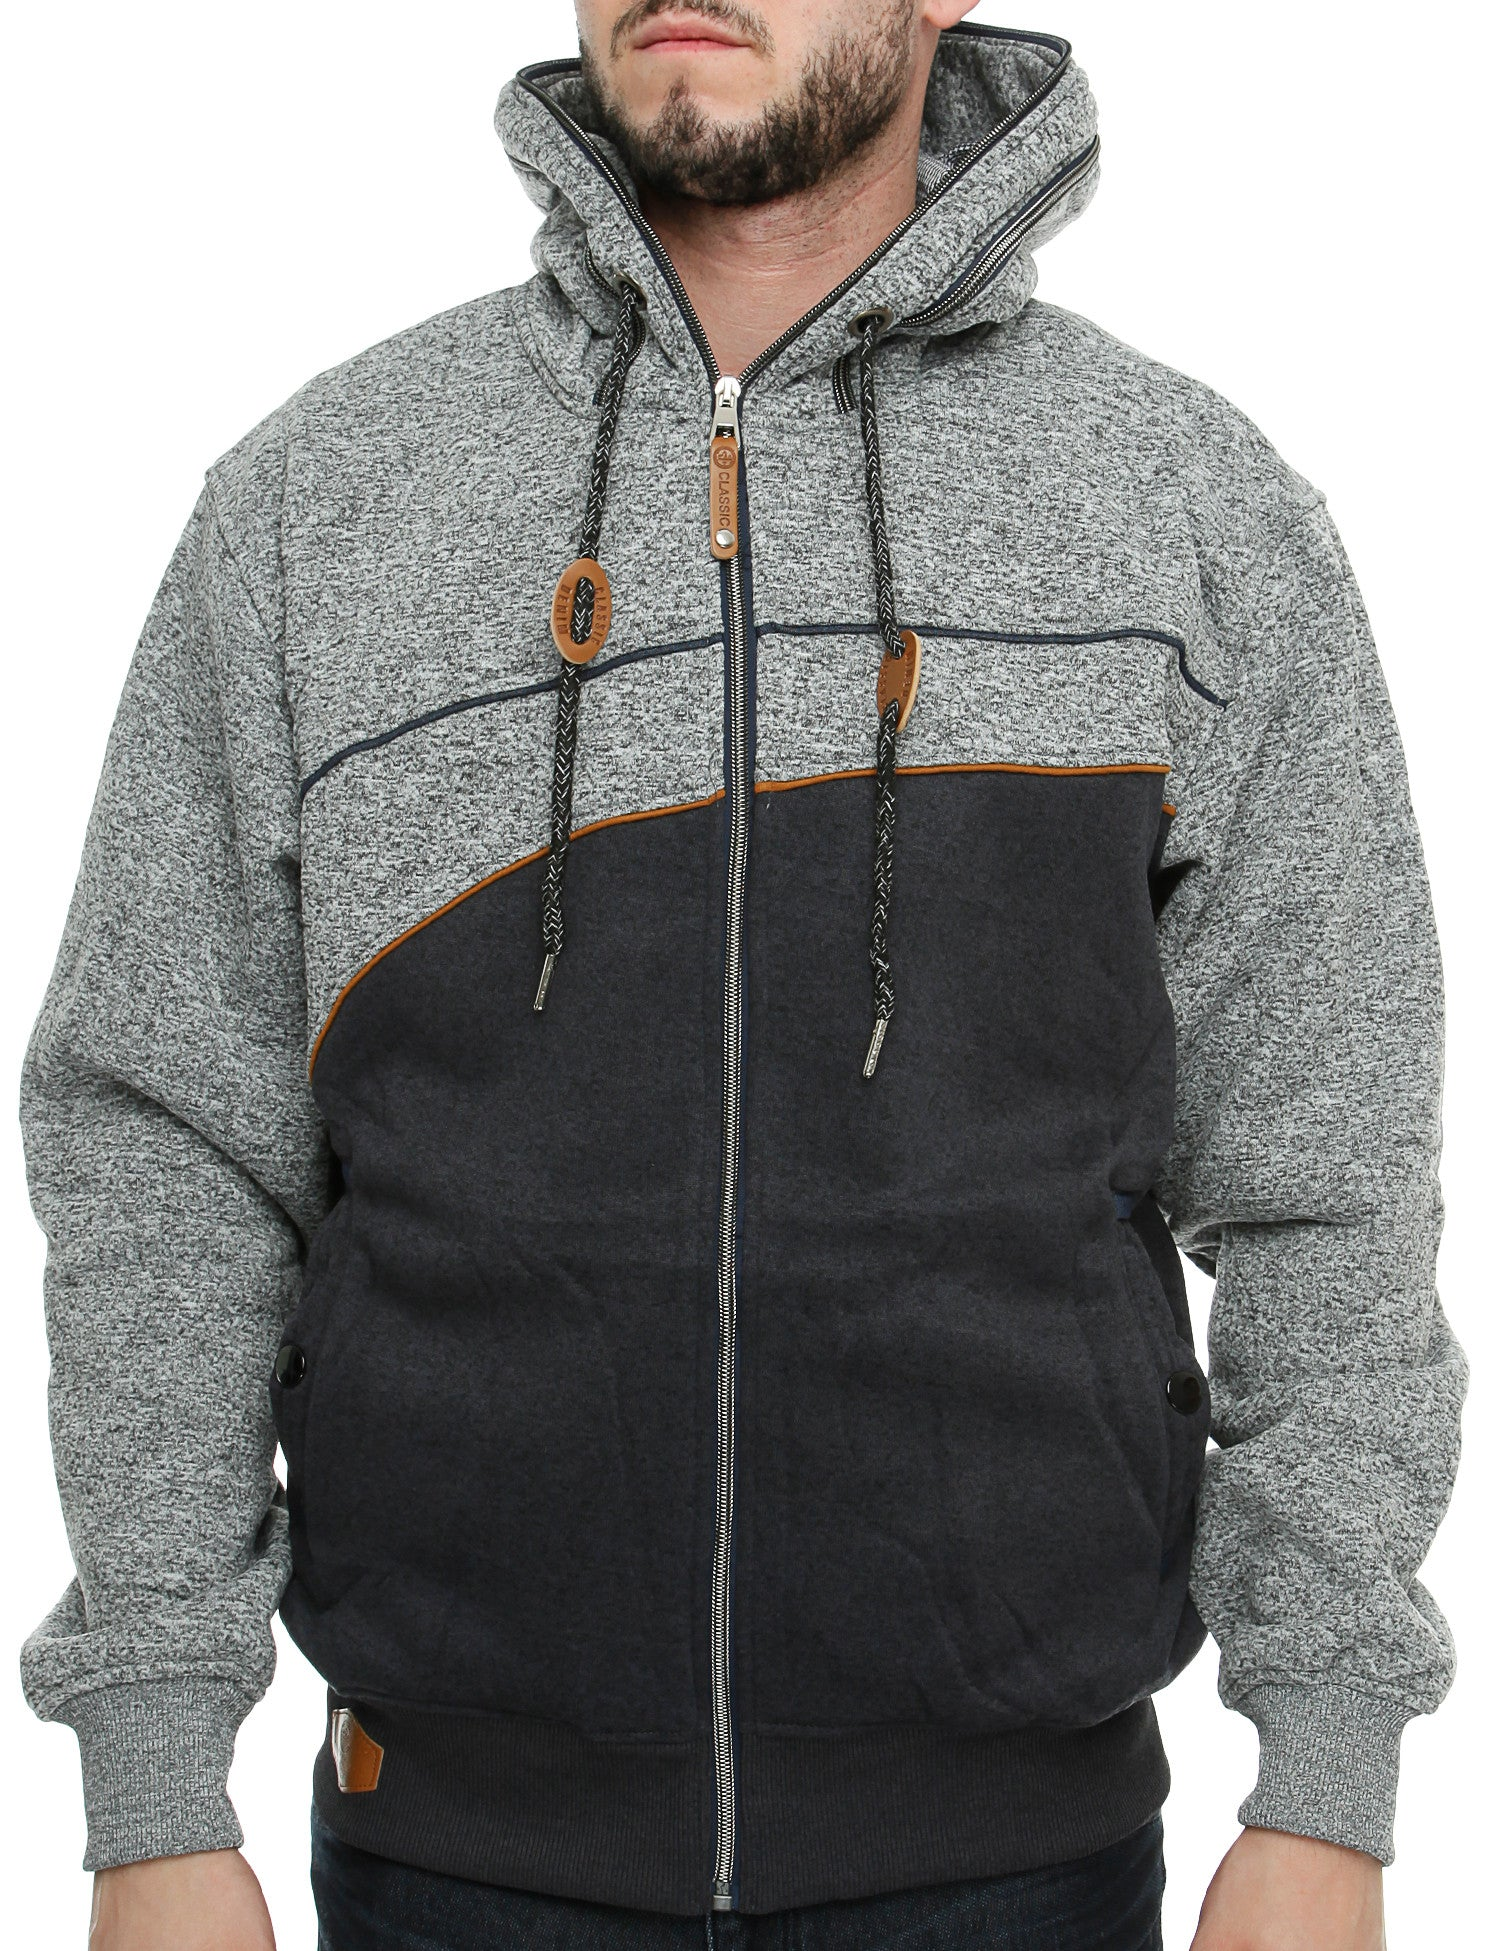 PL Zip Hoody DA-673M Grey Navy